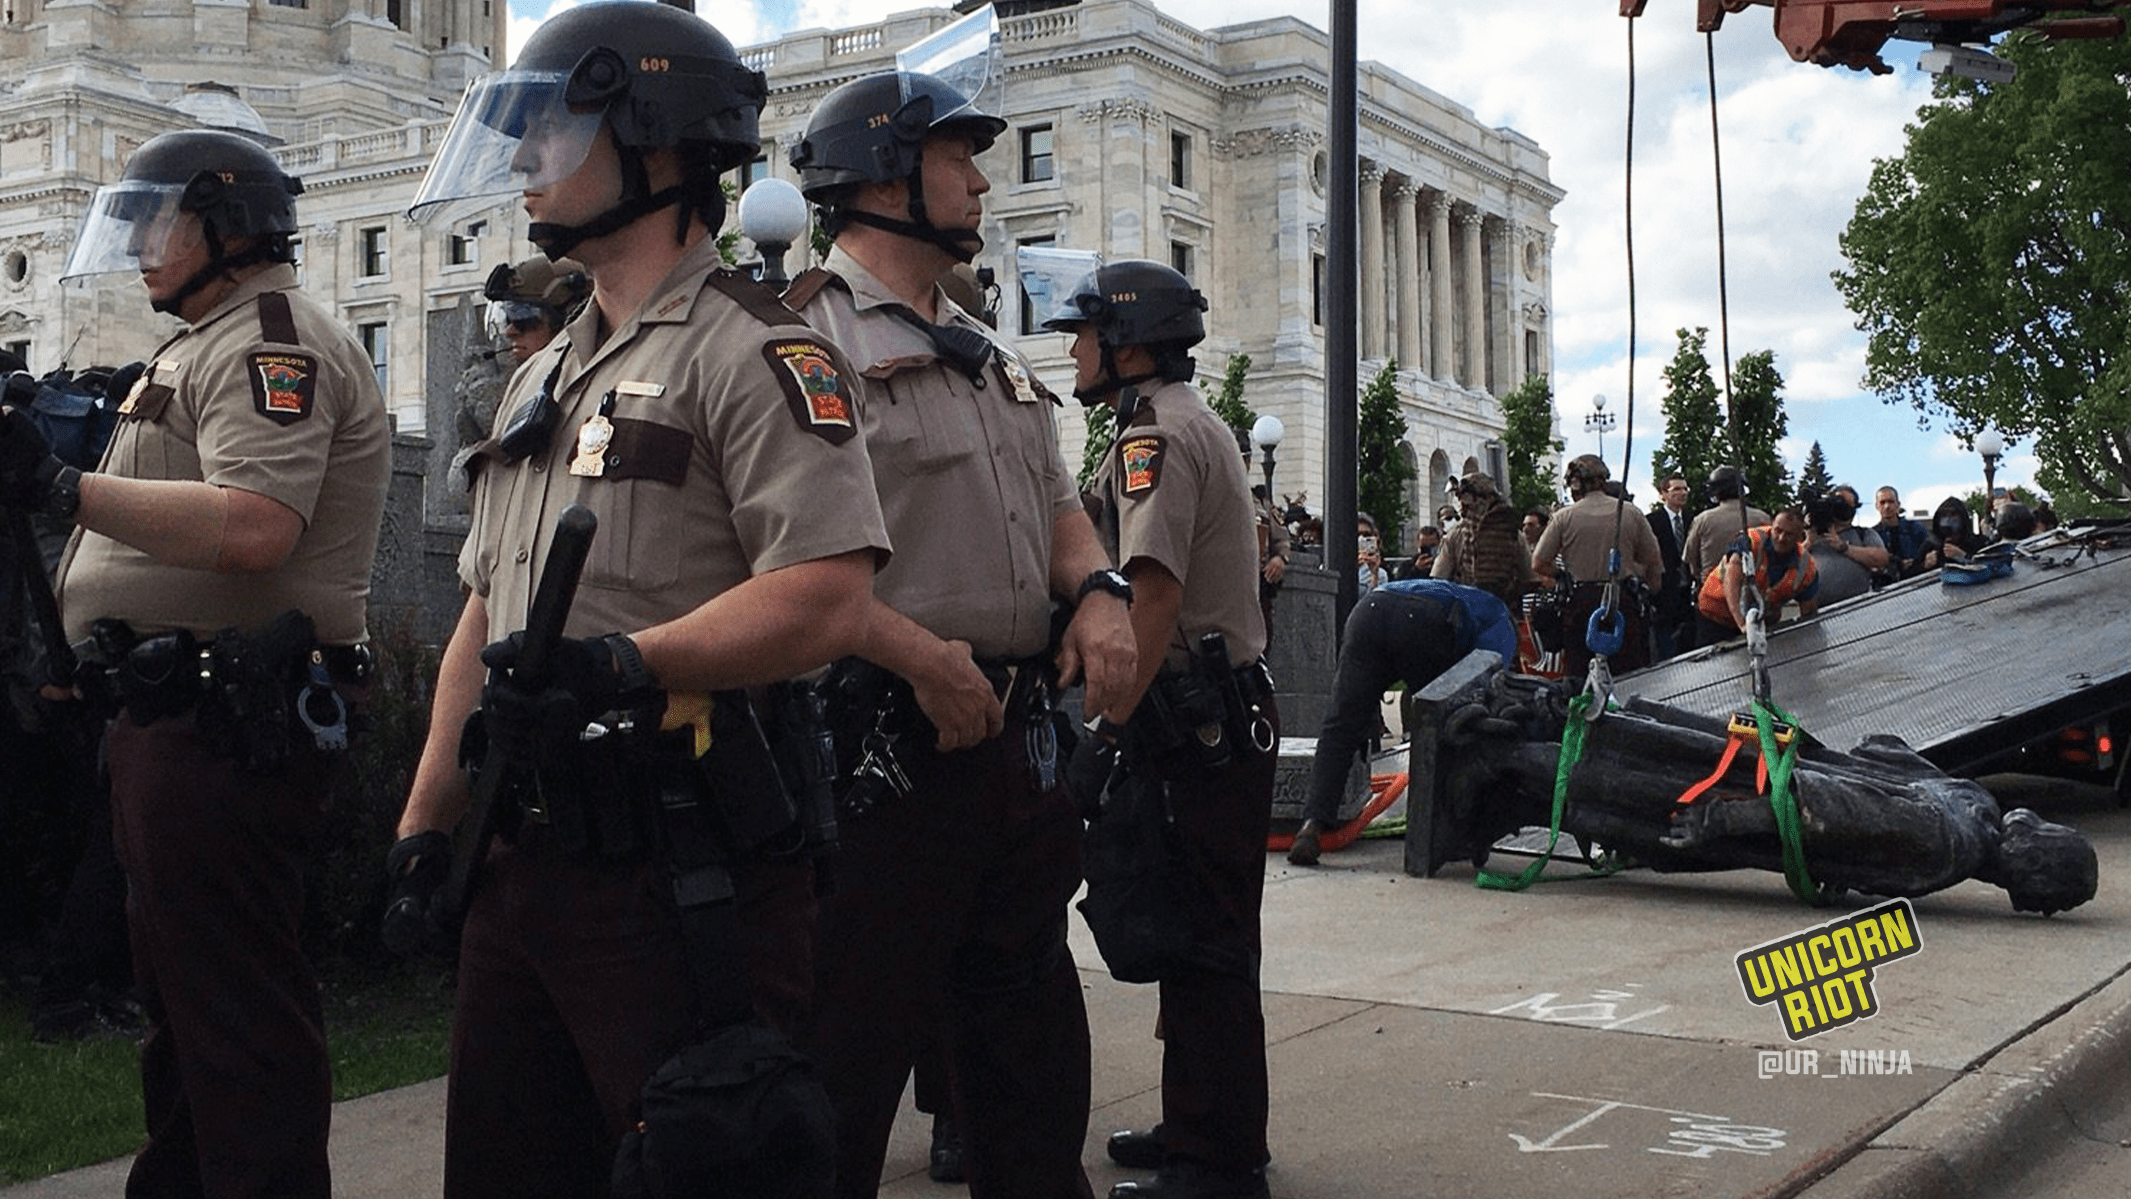 image: state troopers with weapons stand between community members and the statue of Christopher Columbus which was toppled from its pedestal on the grounds of the Minnesota State Capitol on June 10, 2020. The statue is face-down on the ground. Straps are wrapped around the statue – it is about to be hoisted into the air and then placed on a flat-bed truck for removal.